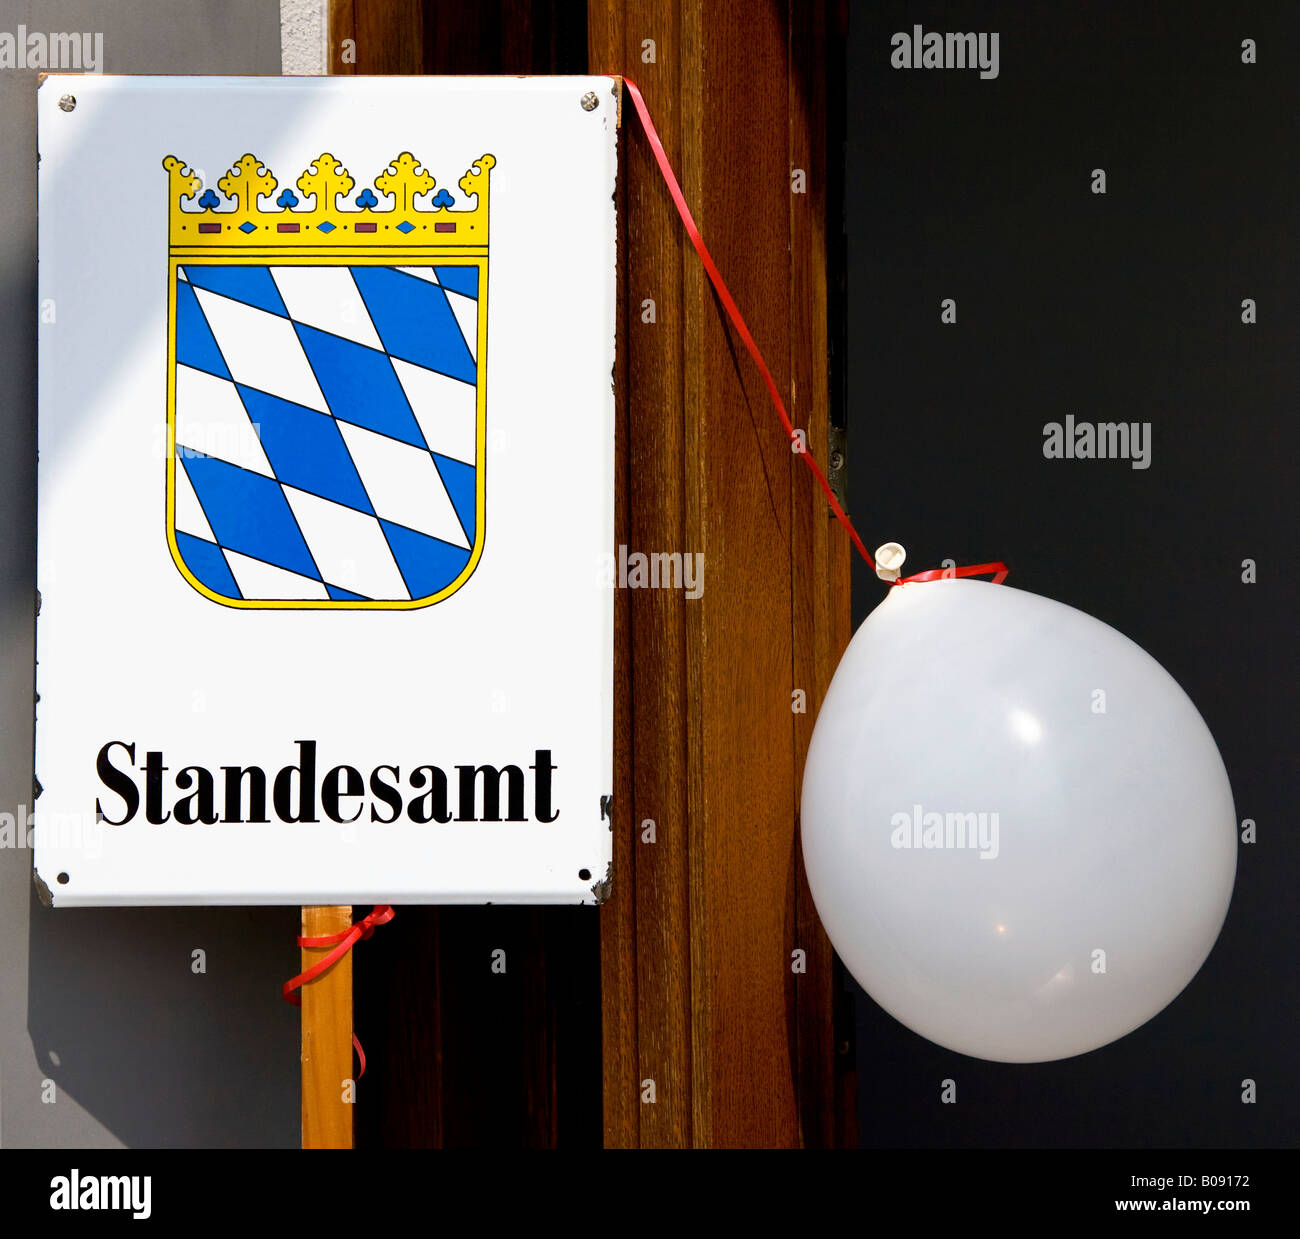 Baloon and Bavarian civil registry office sign - Stock Image